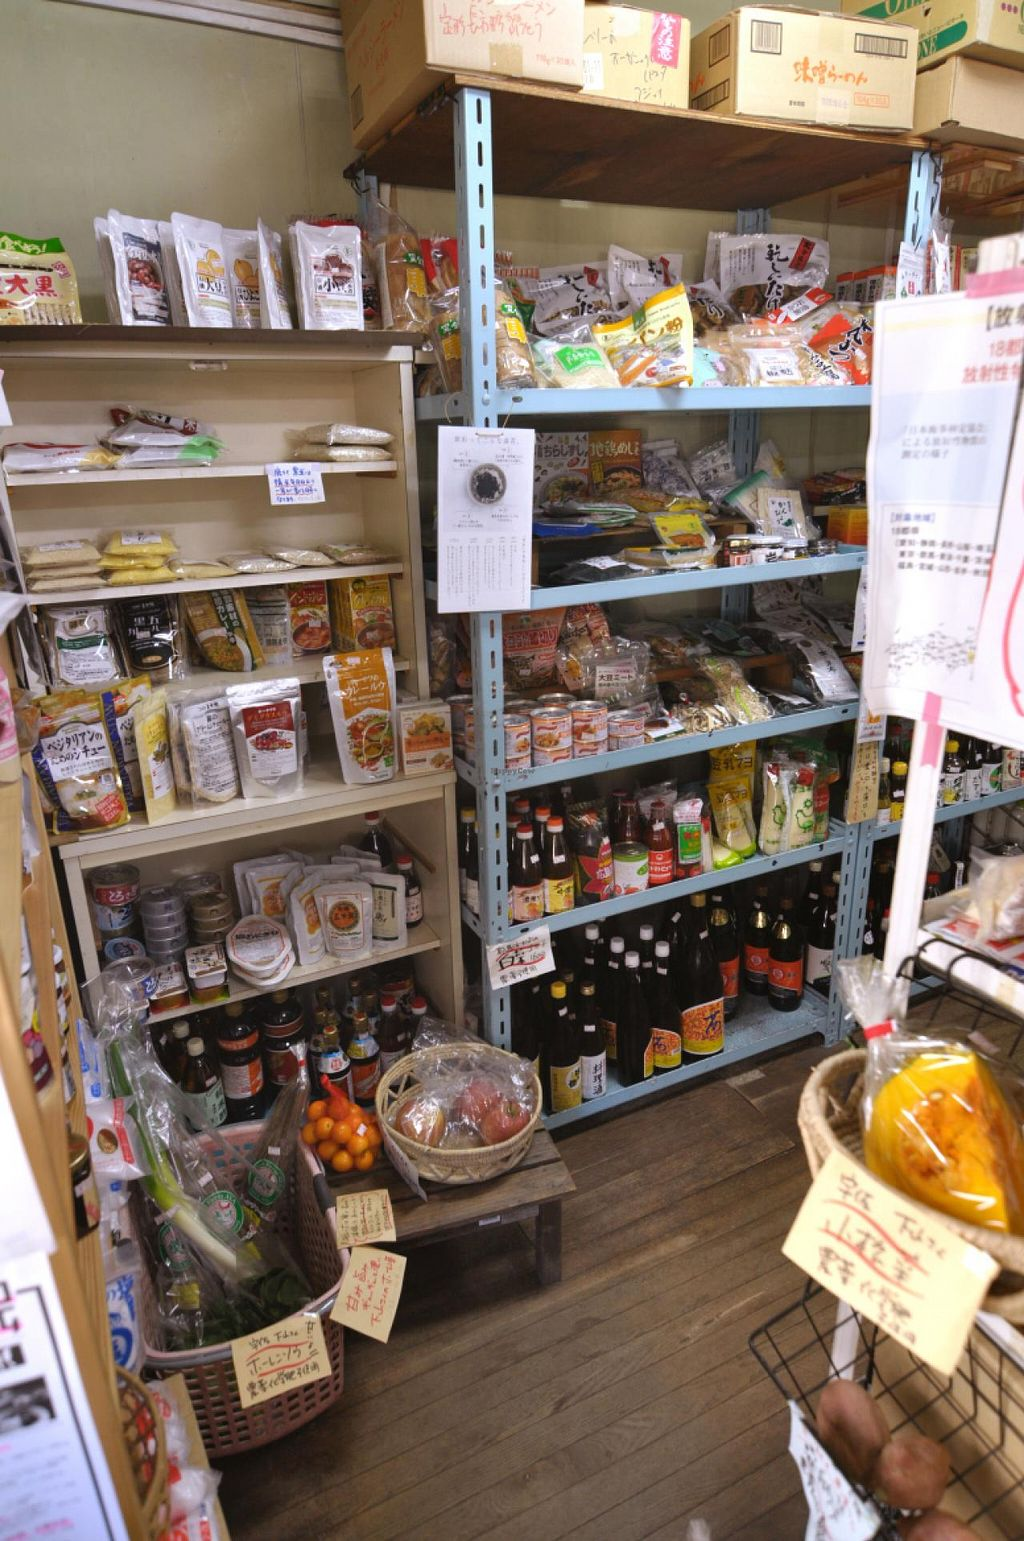 """Photo of Niconicomura Organic Vegan Food  by <a href=""""/members/profile/thepianowindow"""">thepianowindow</a> <br/>The shop on the first floor. Credit: beppueats.wordpress.com <br/> July 4, 2015  - <a href='/contact/abuse/image/60229/108166'>Report</a>"""